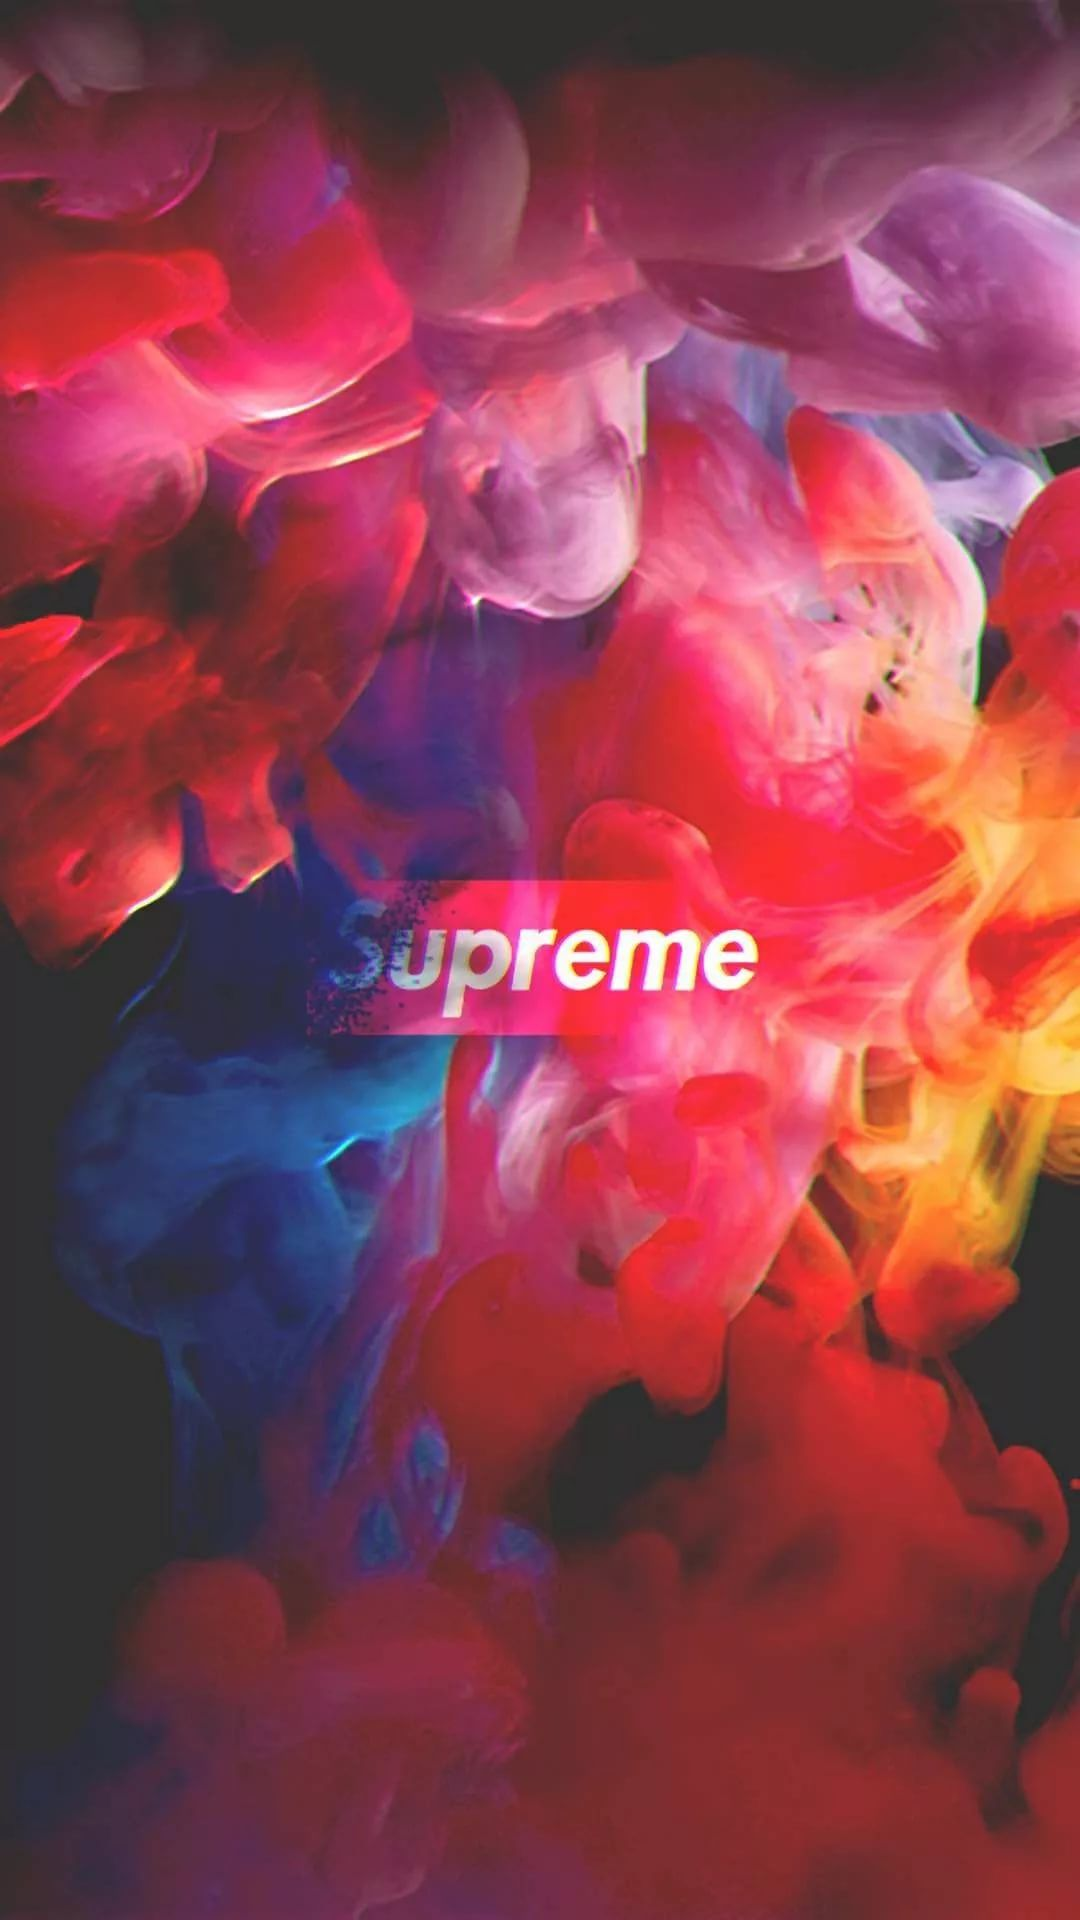 Supreme wallpaper for iPhone